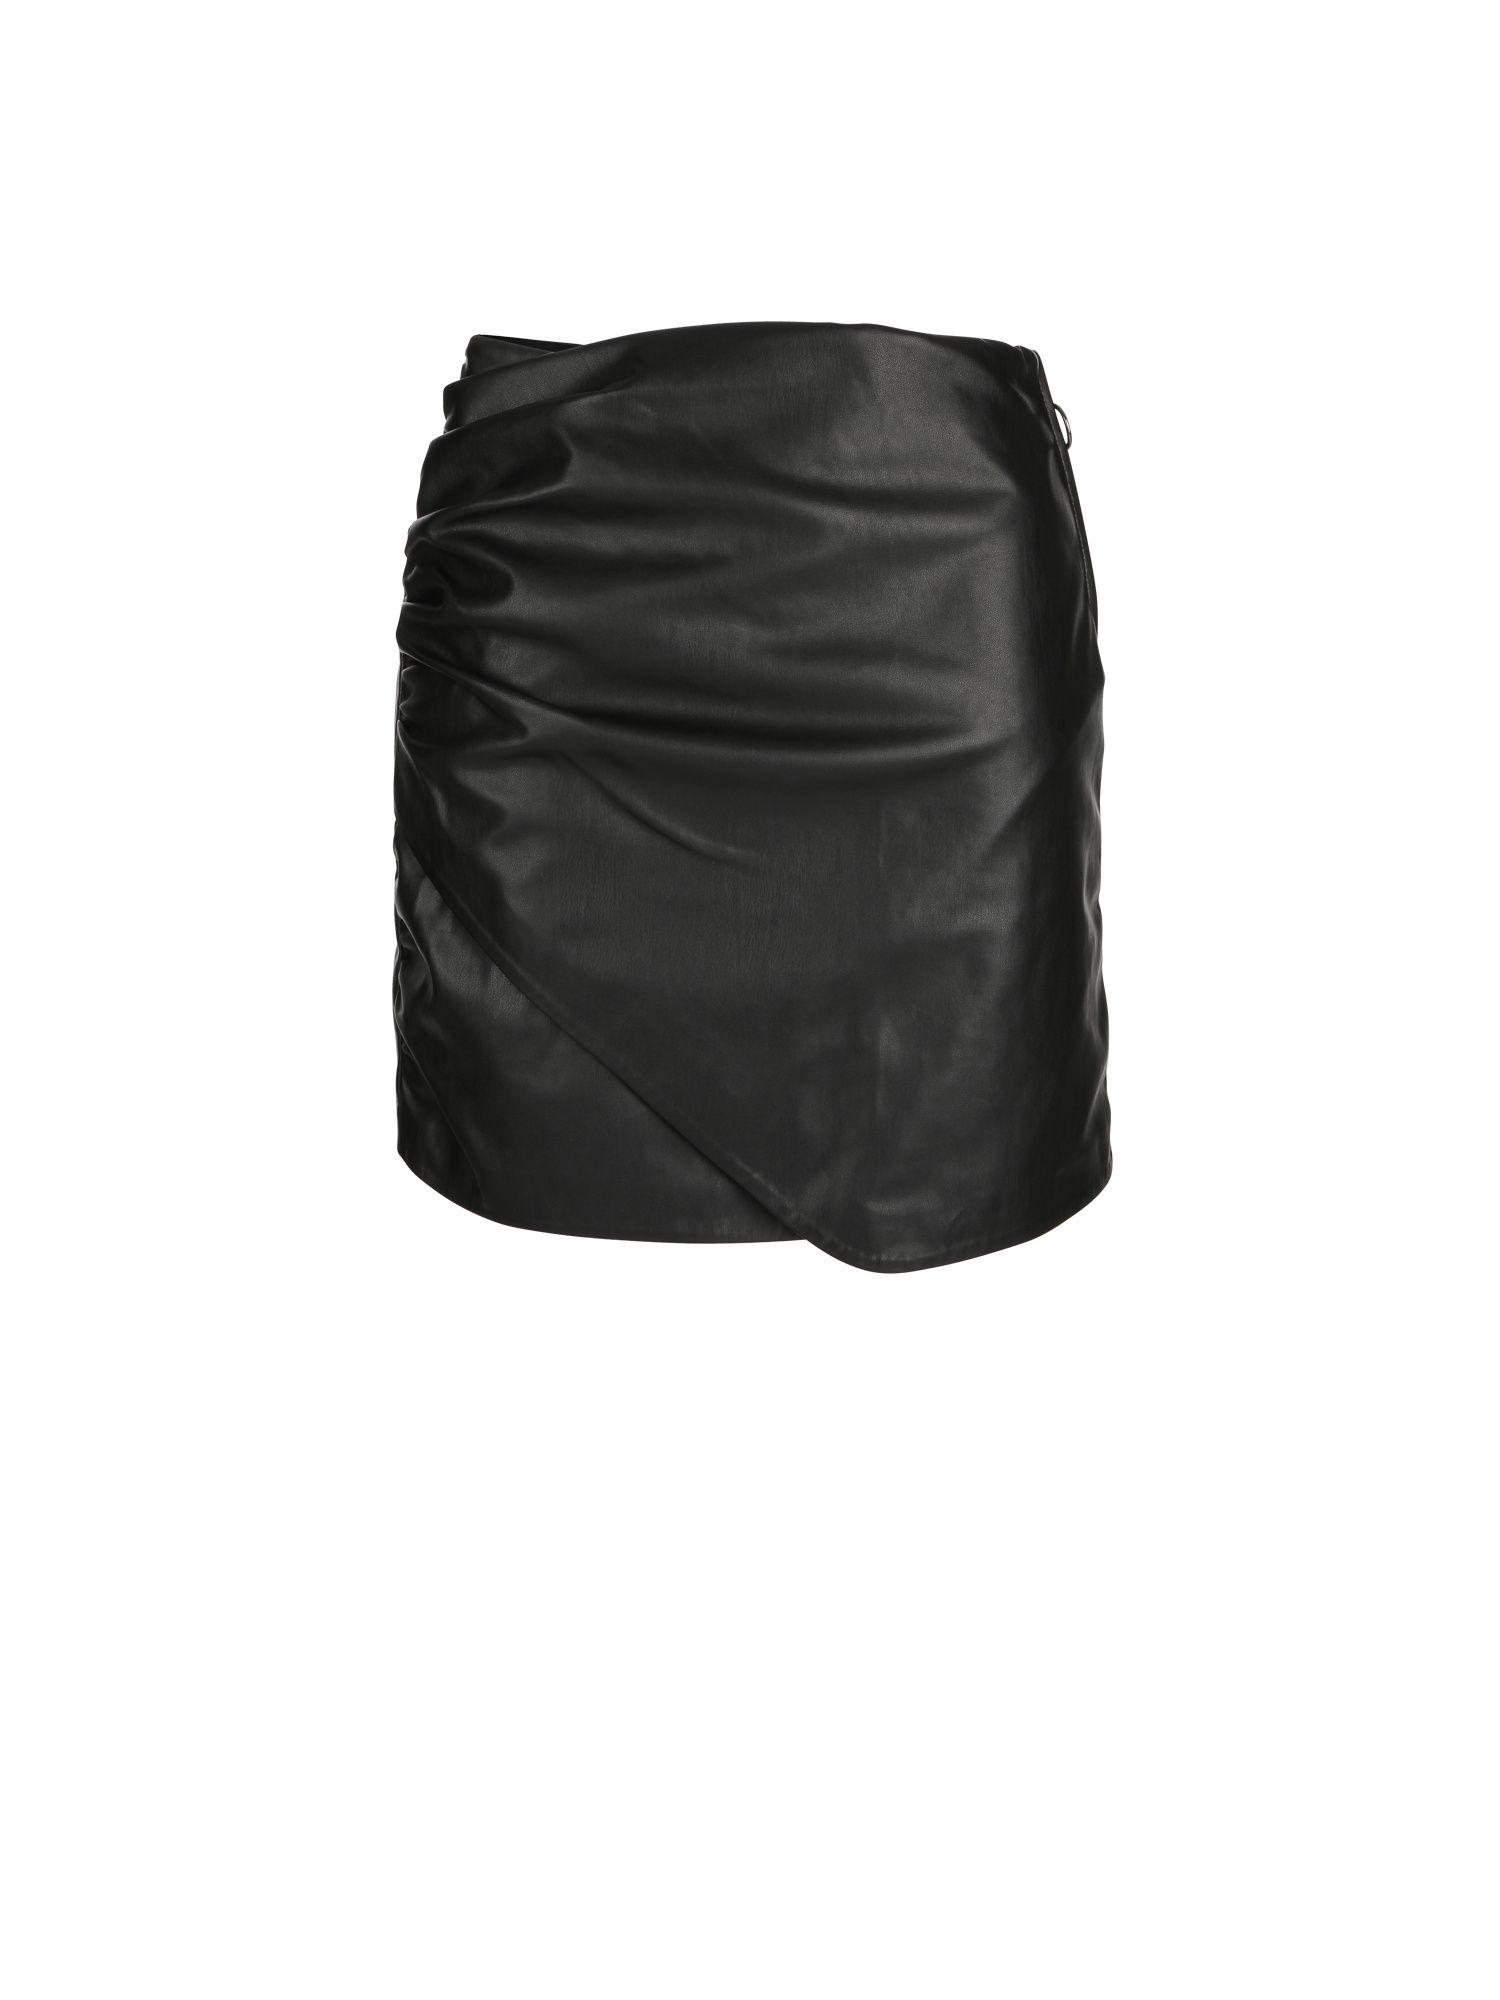 Morgan Ruched Faux Leather Miniskirt, Black